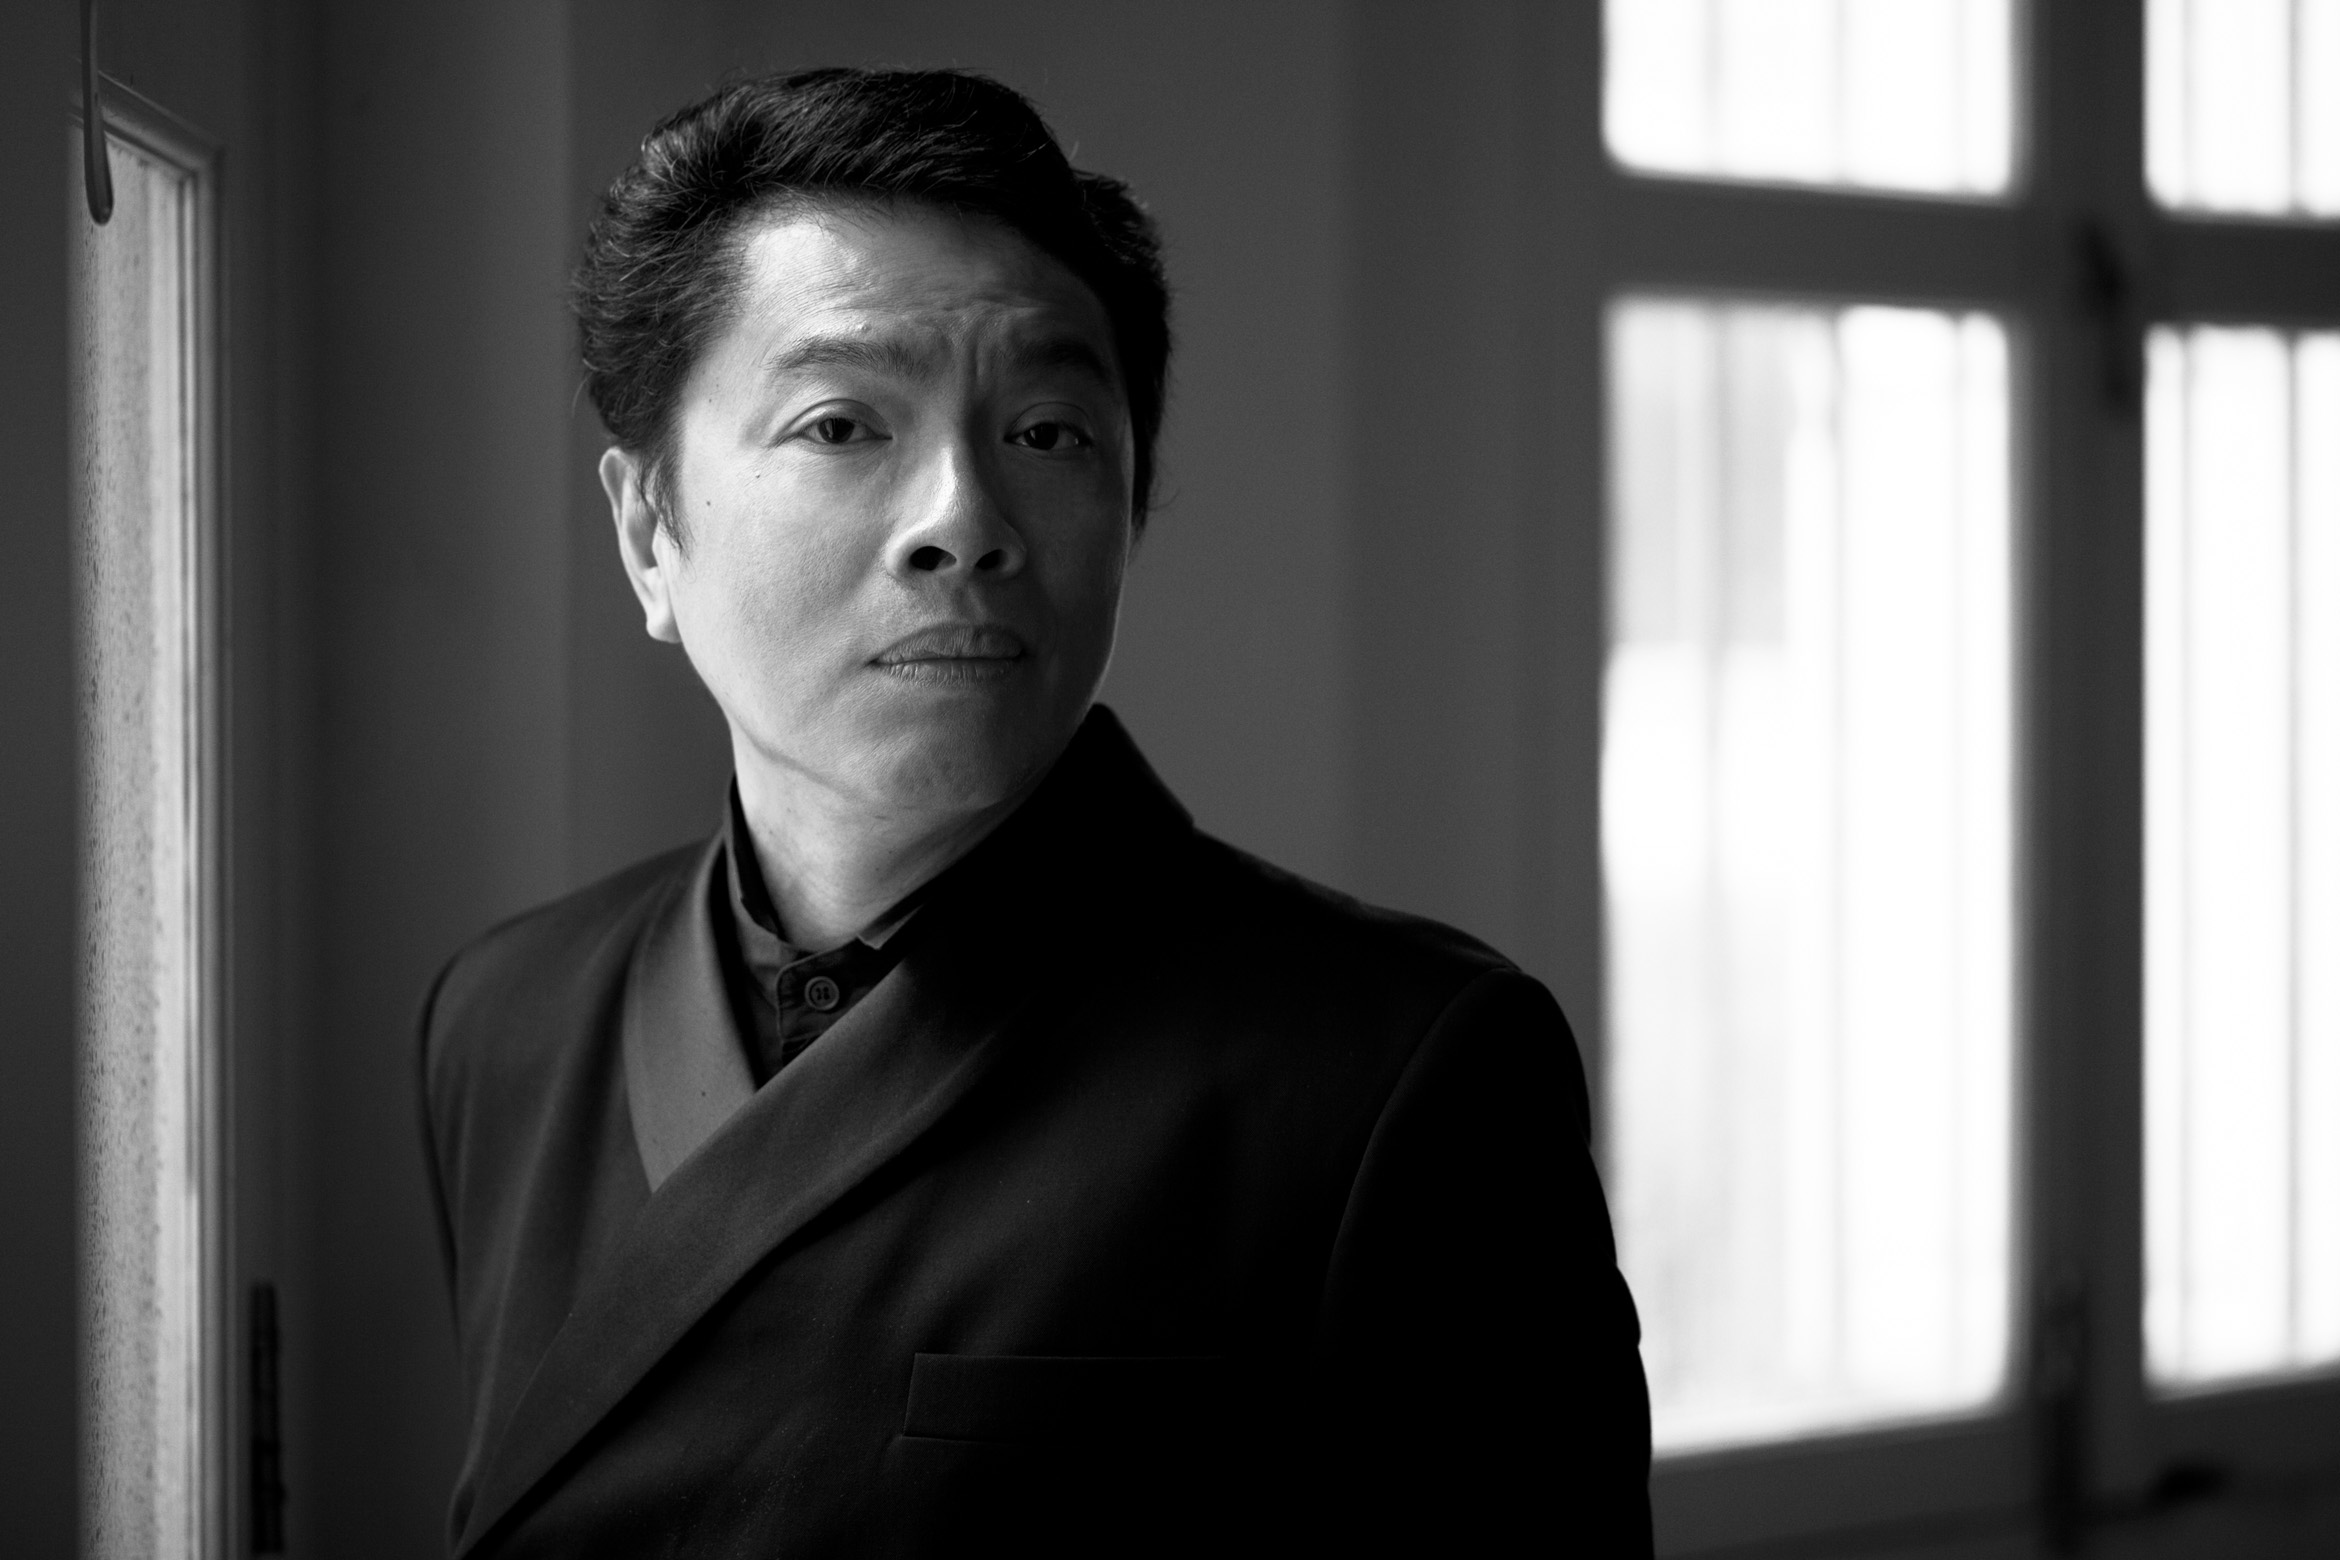 Ong Keng Sen: From papers to plays